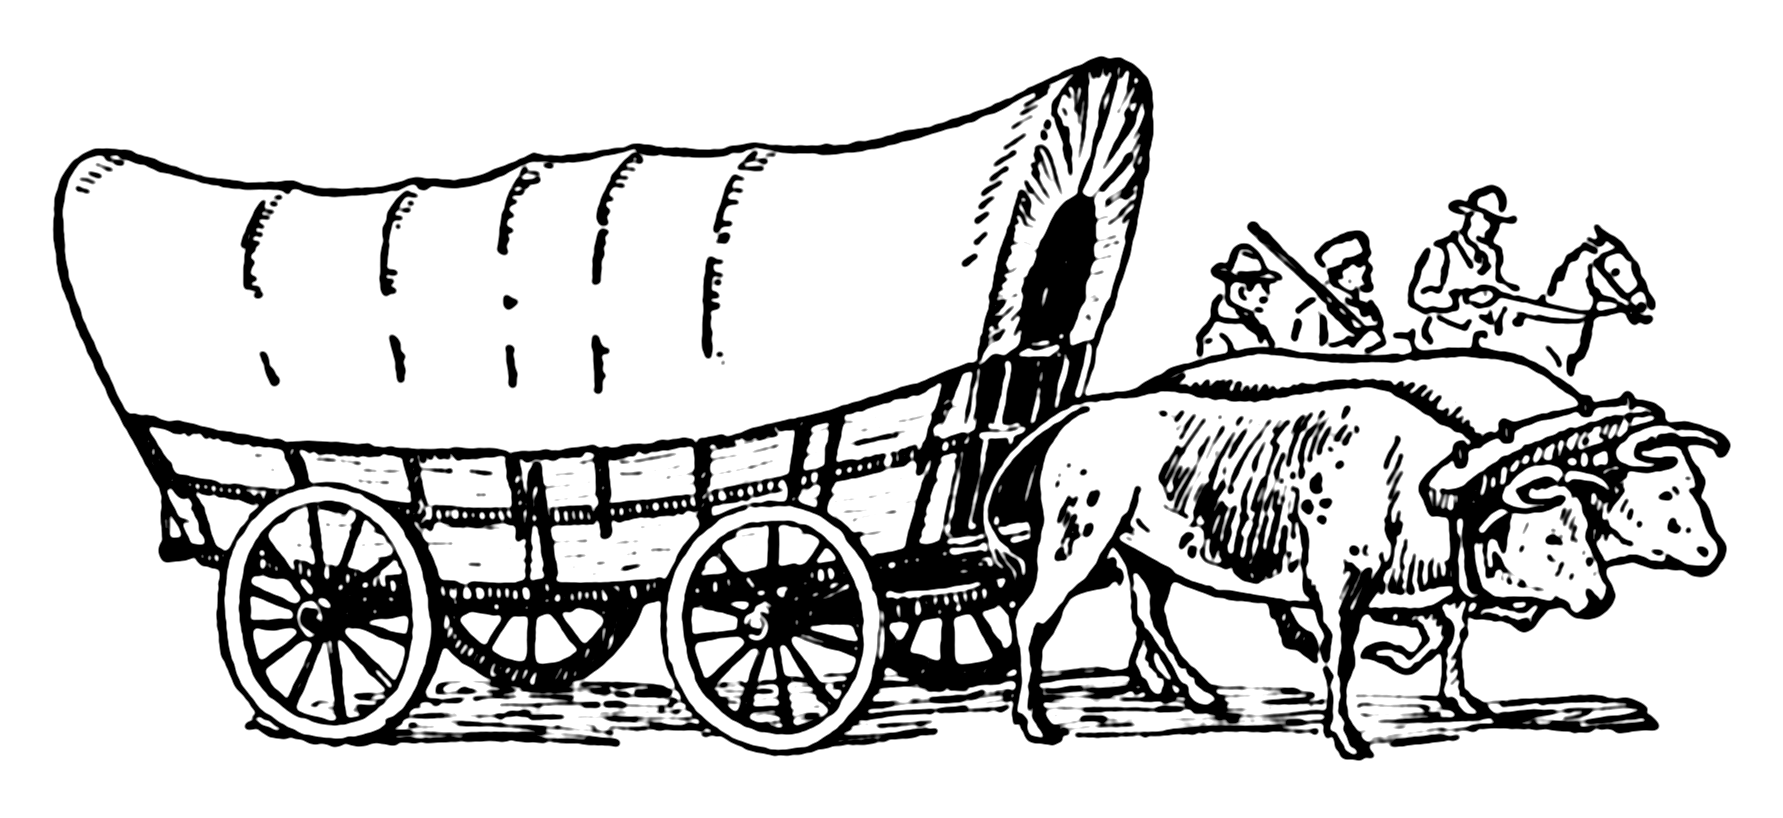 Wagon clipart western wagon. Free cliparts download clip